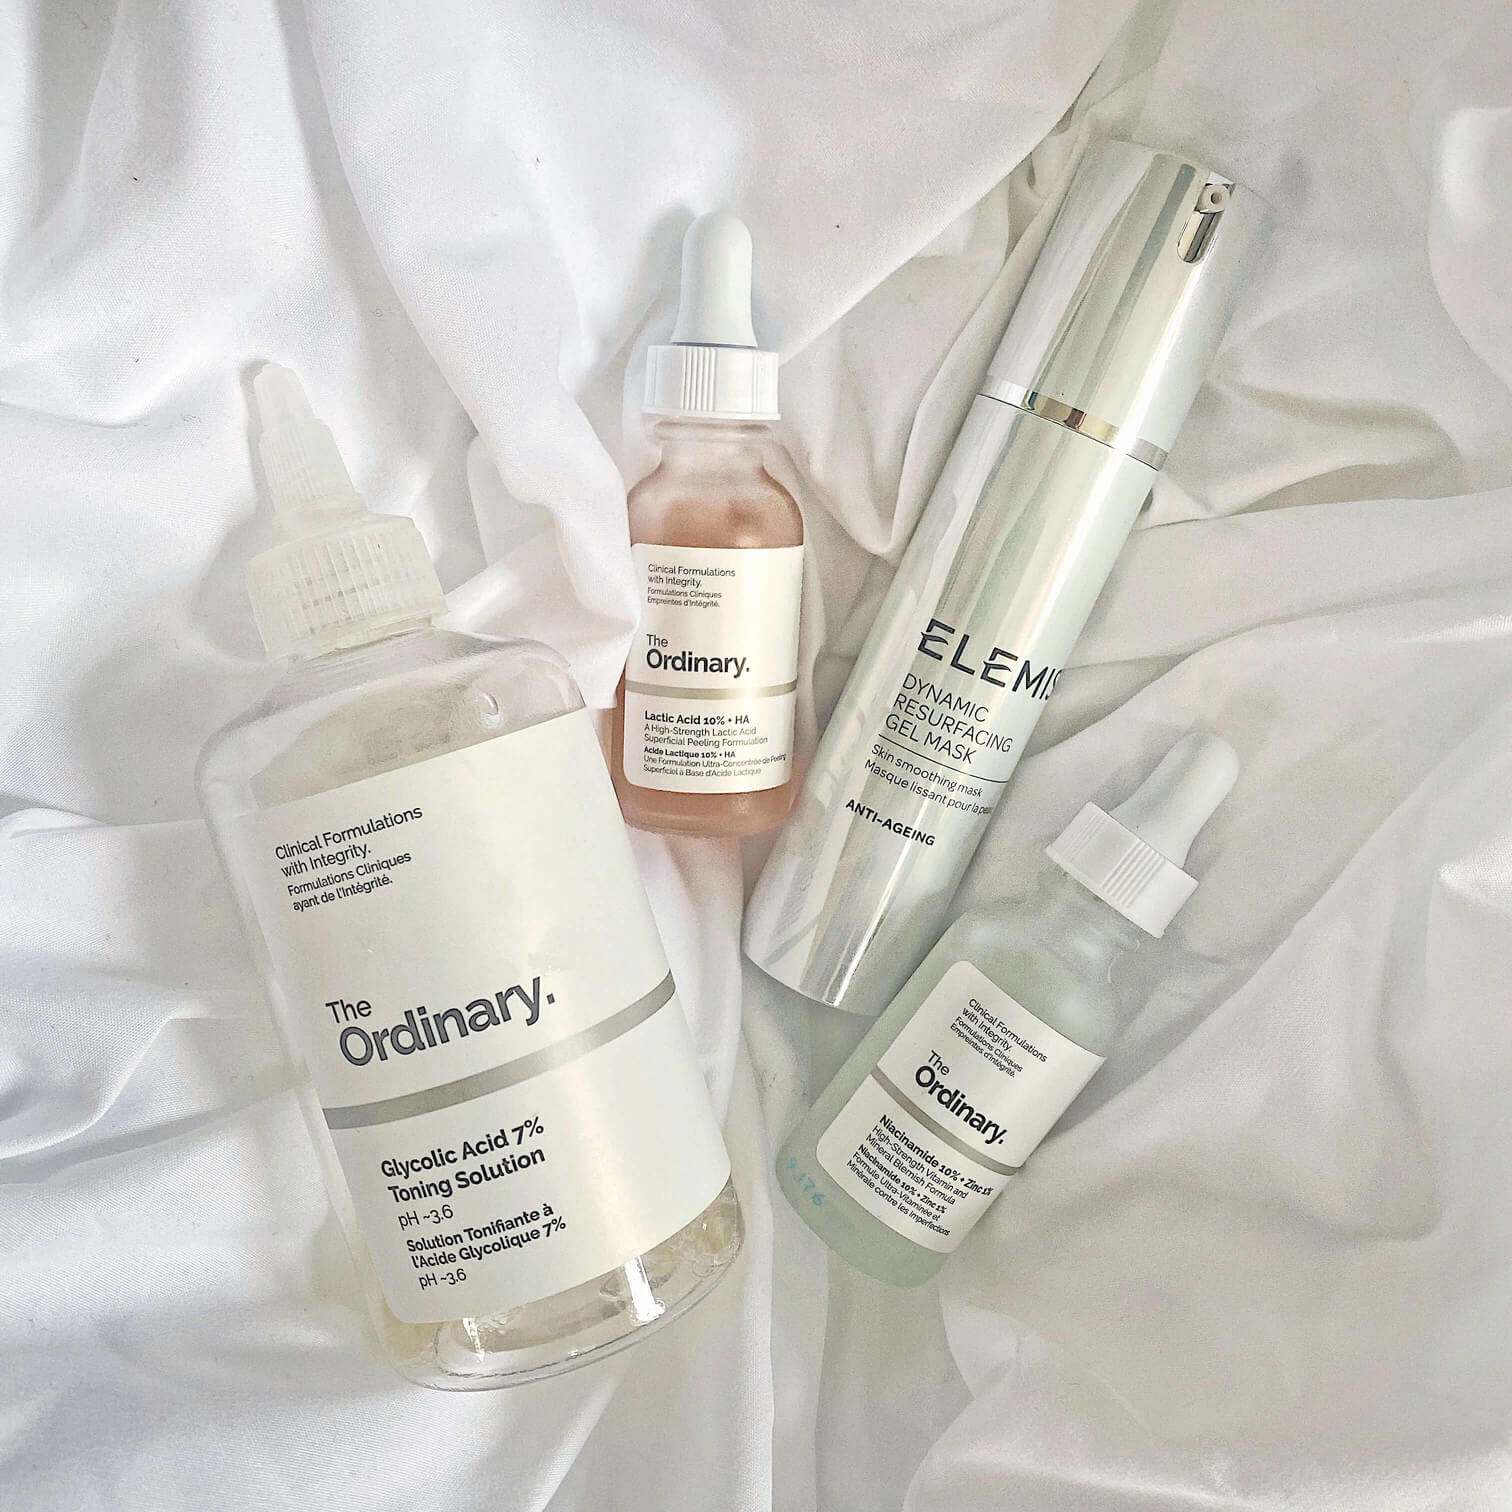 Dynamic resurfacing gel mask by Elemis and The Ordinary products